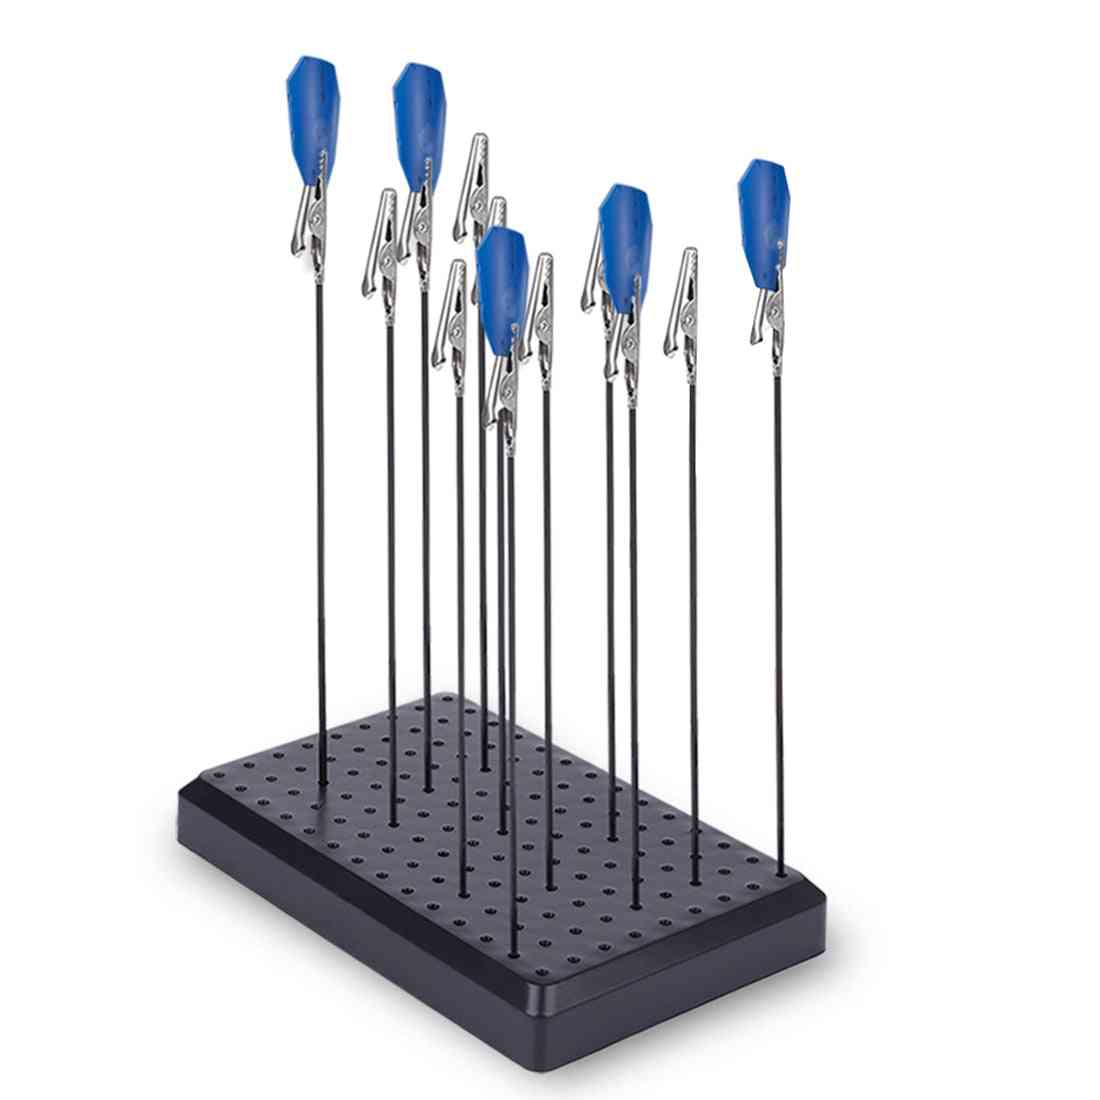 Alligator Clip With Metal Pole And Stand Base-building Tool Sets